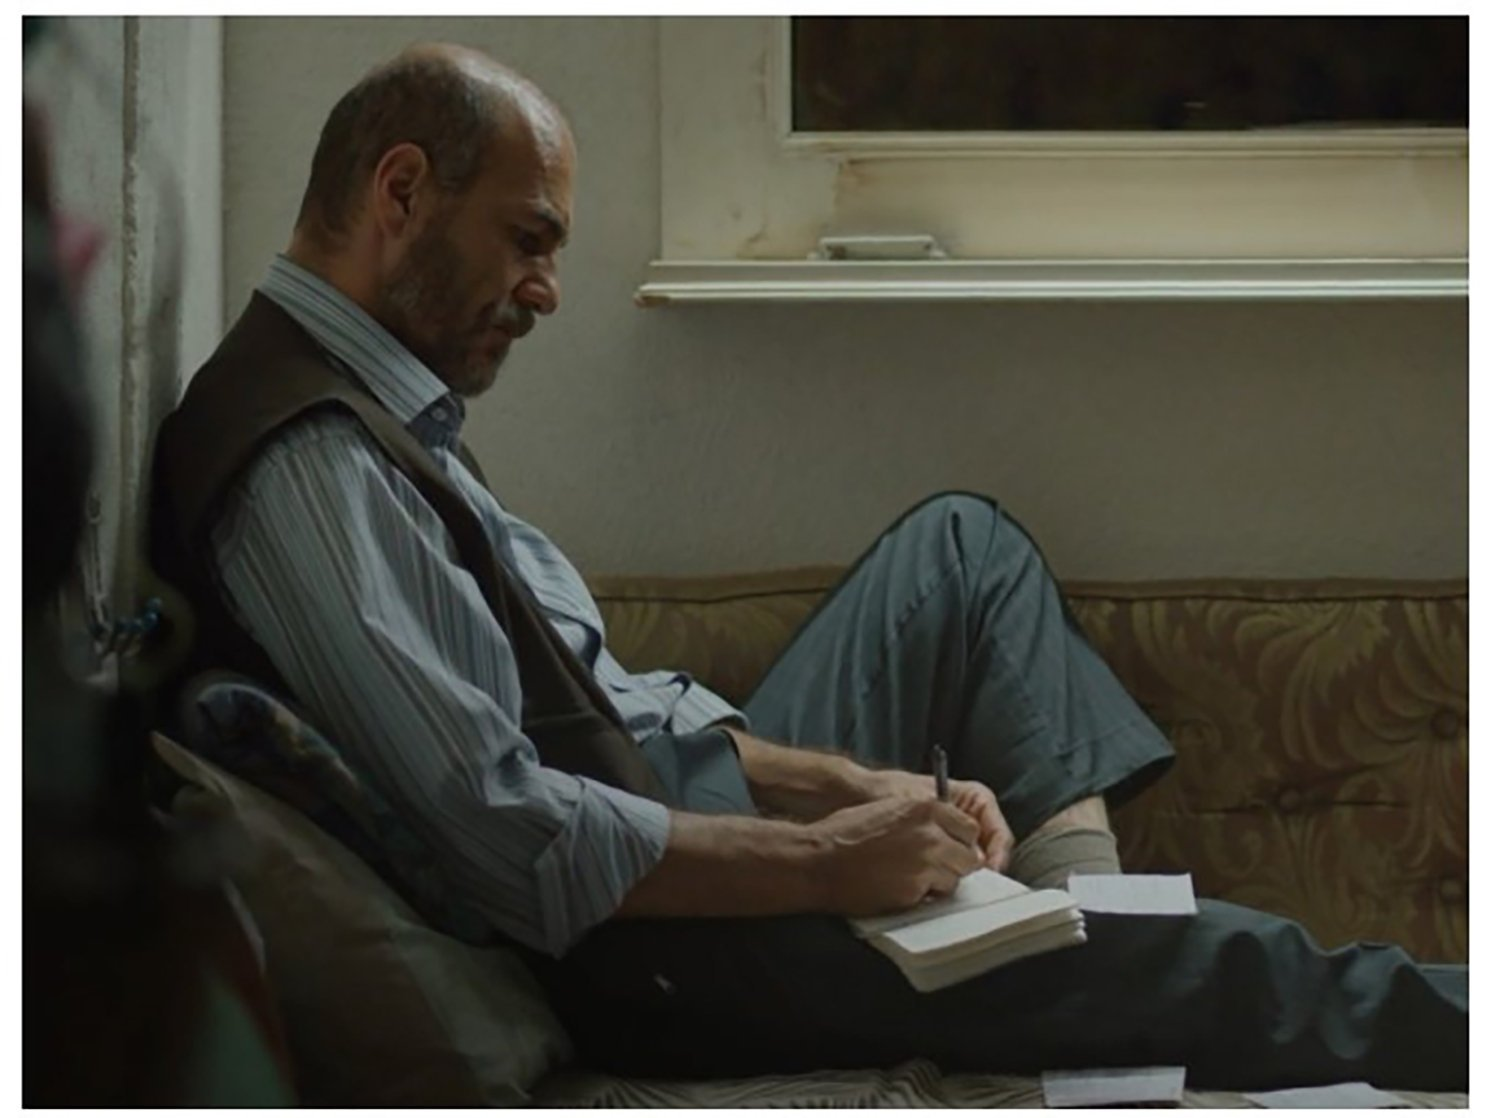 """Umut Karadağ takes notes while sitting down, in a scene from the film """"Bağlılık Hasan"""" (""""Commitment Hasan""""). (Archive Photo)"""